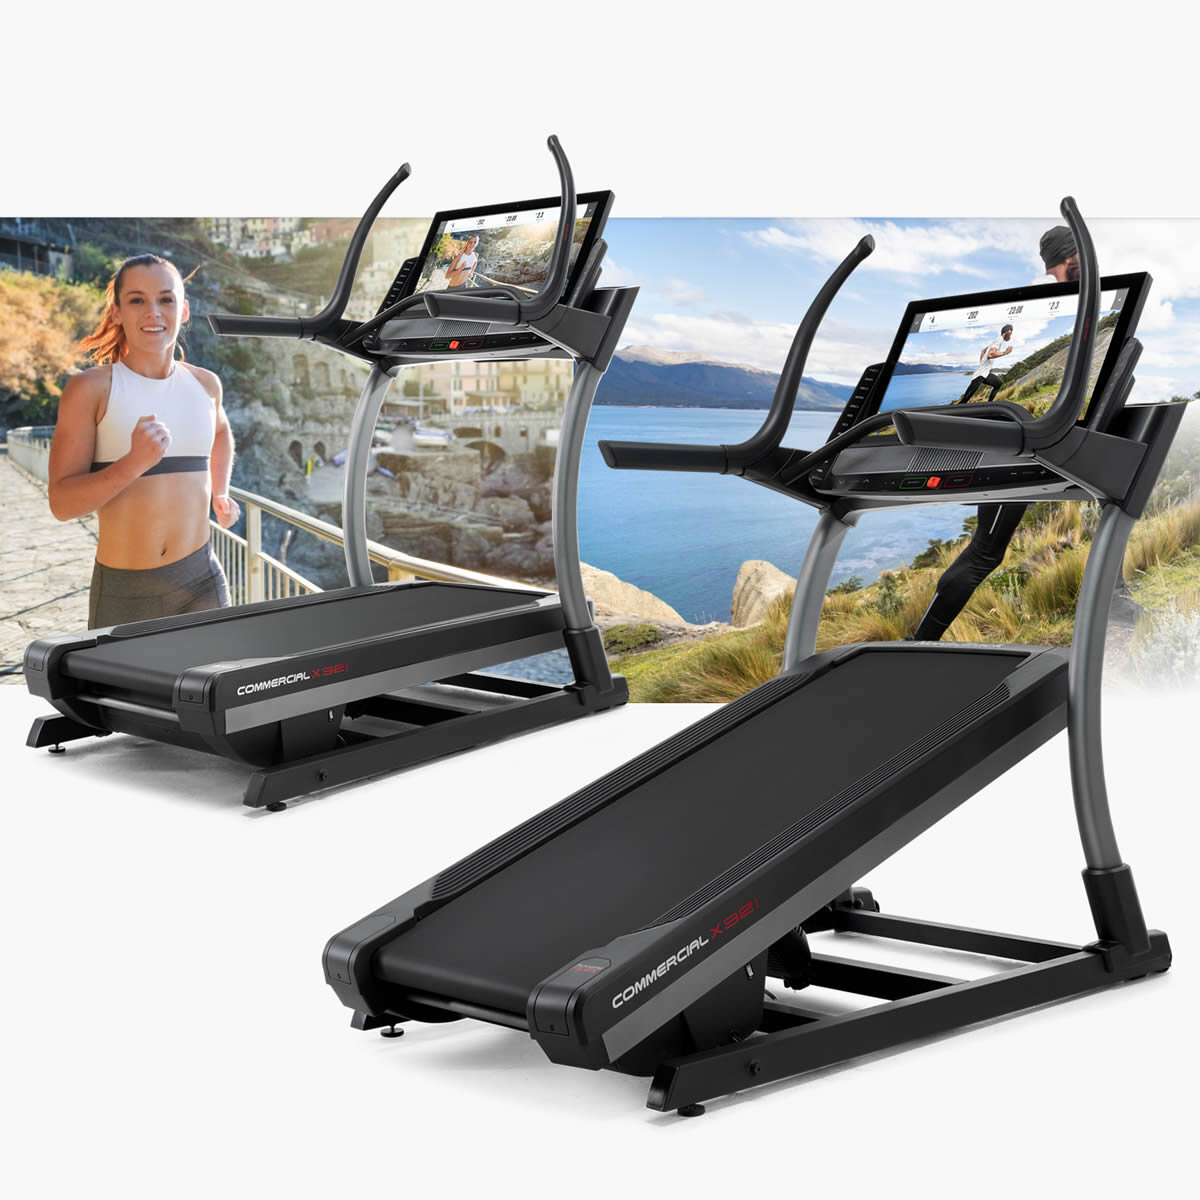 X32i Incline Trainer - READ X32I INCLINE TRAINER REVIEW